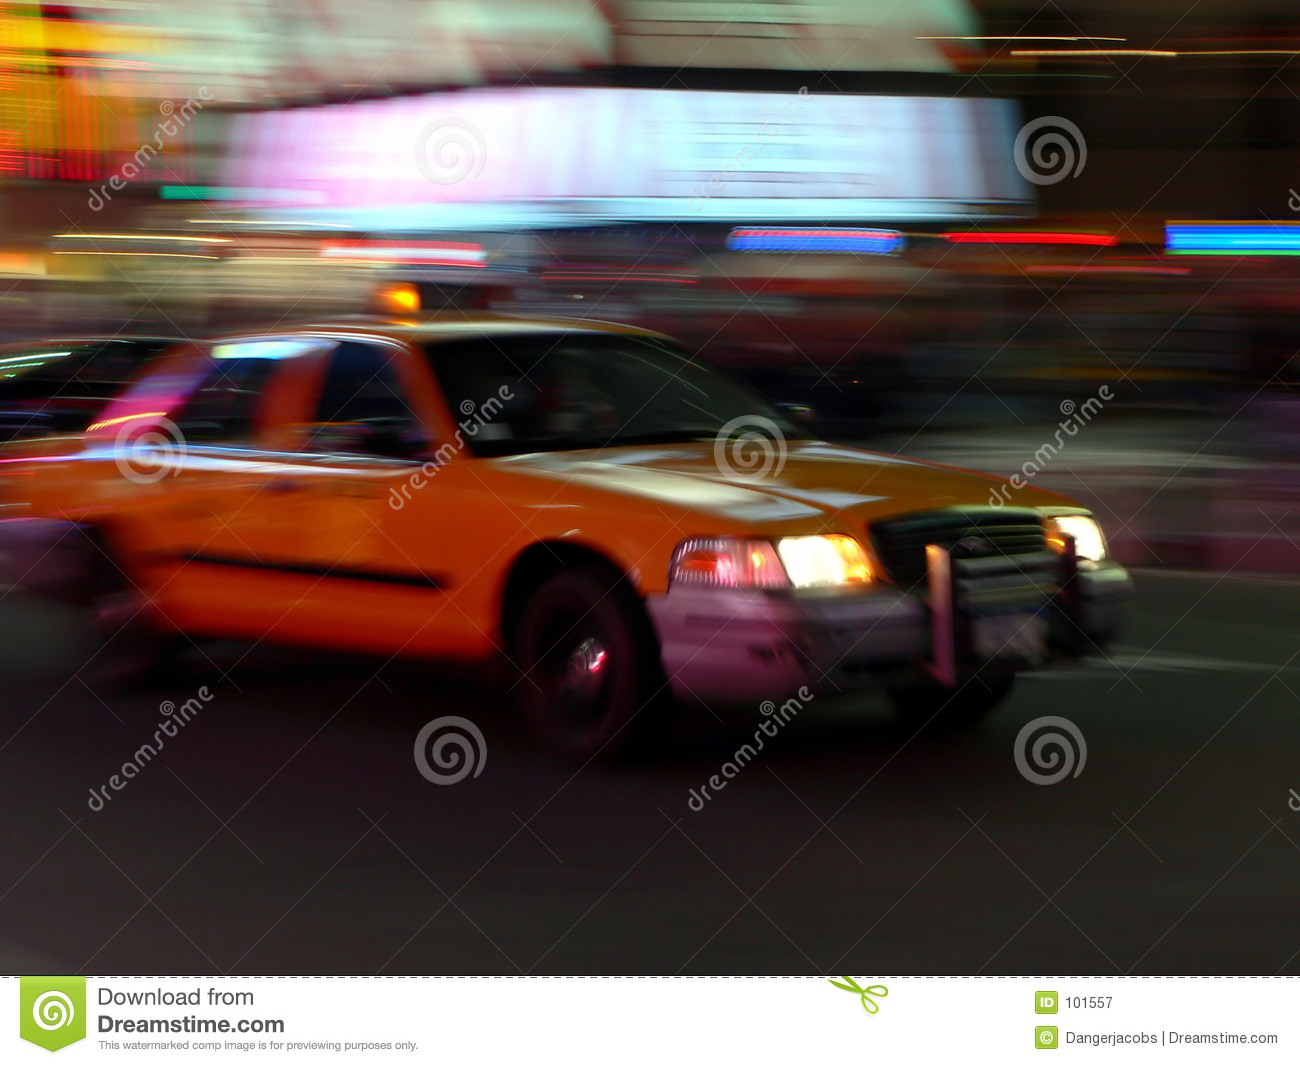 Taxi speeds down the street